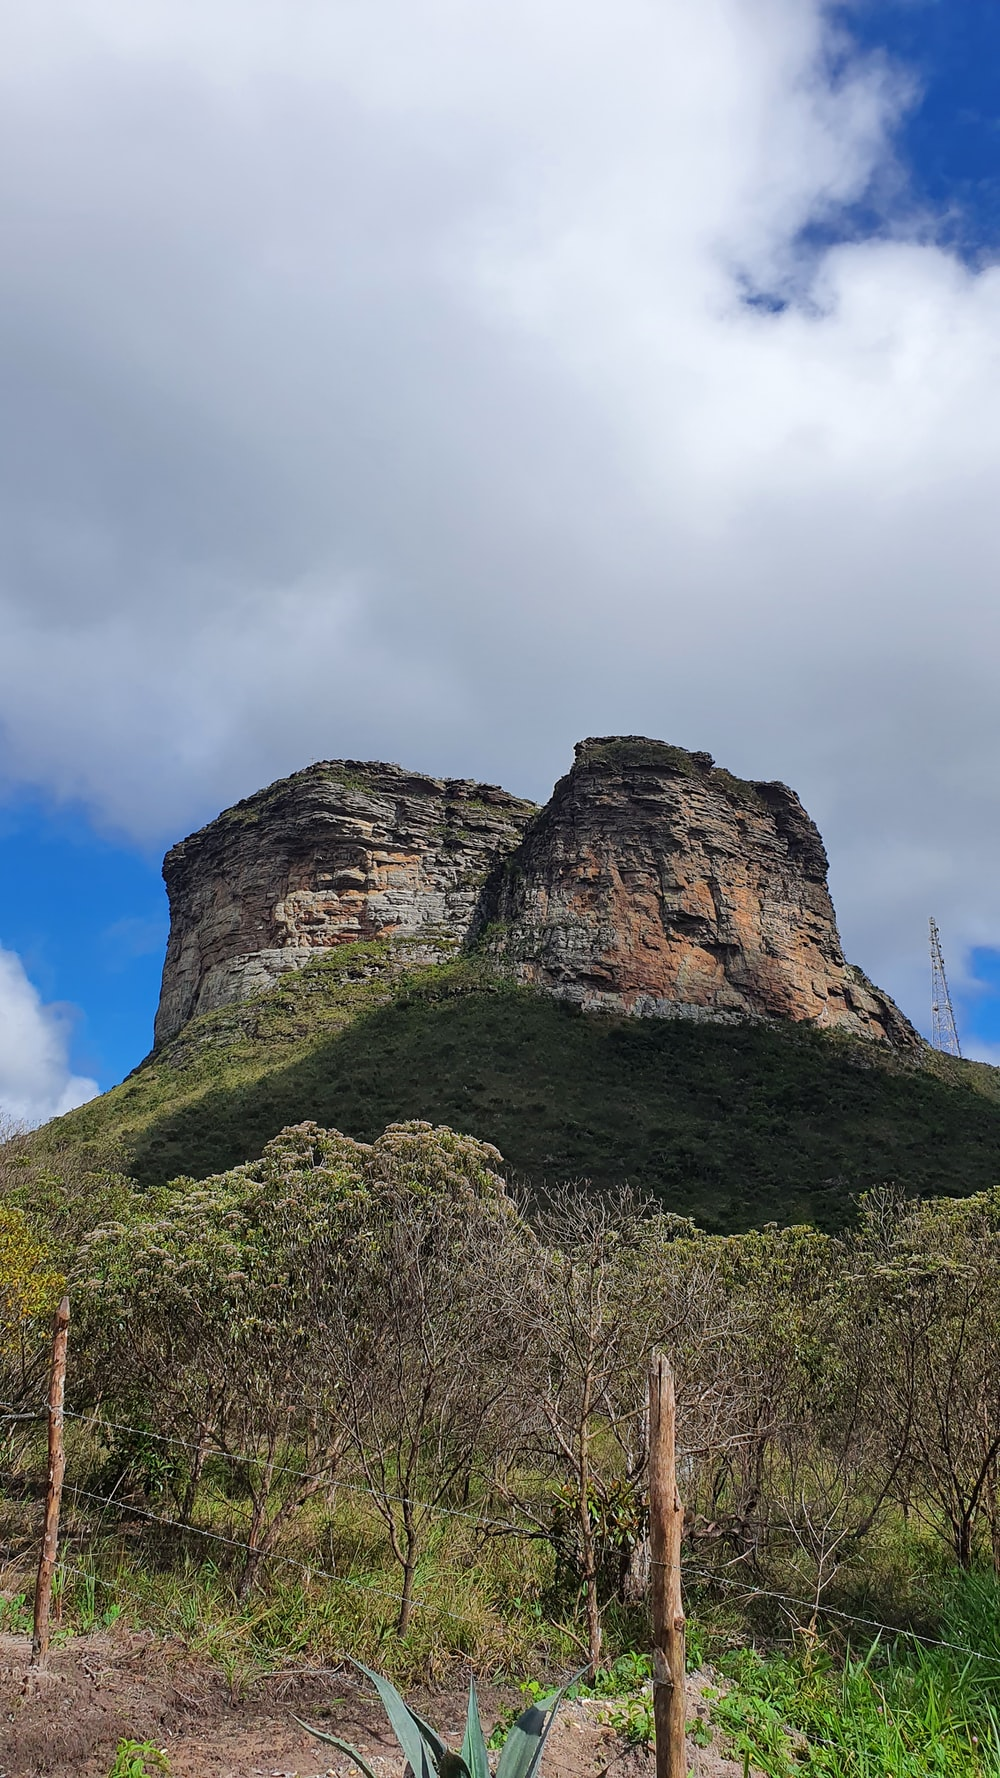 green and brown rock formation under white clouds during daytime